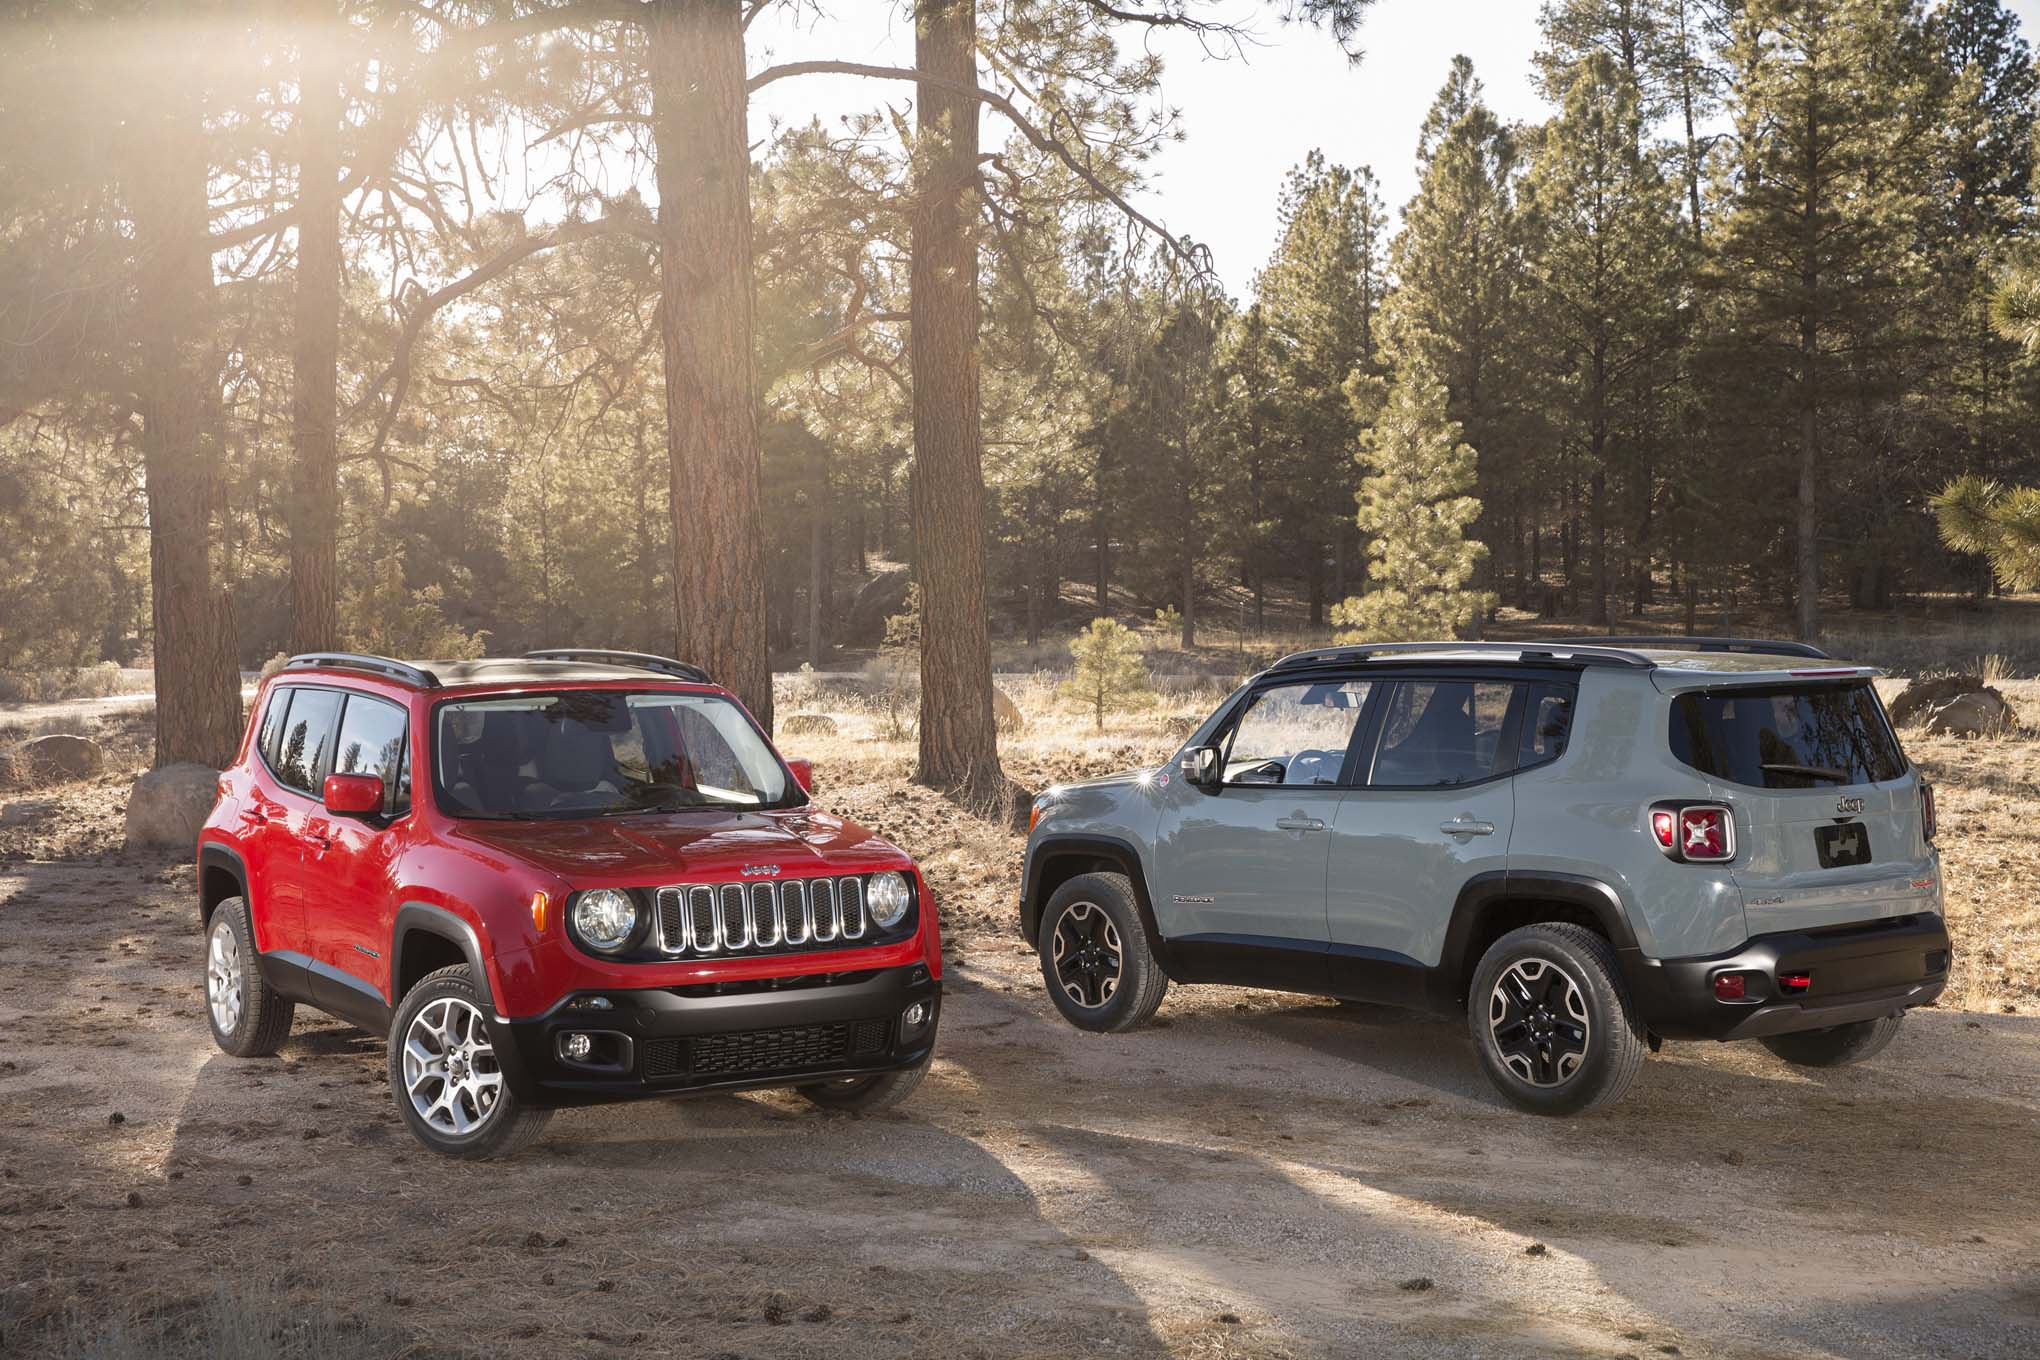 2015 Jeep Renegade Expected to Reach 30 MPG Highway